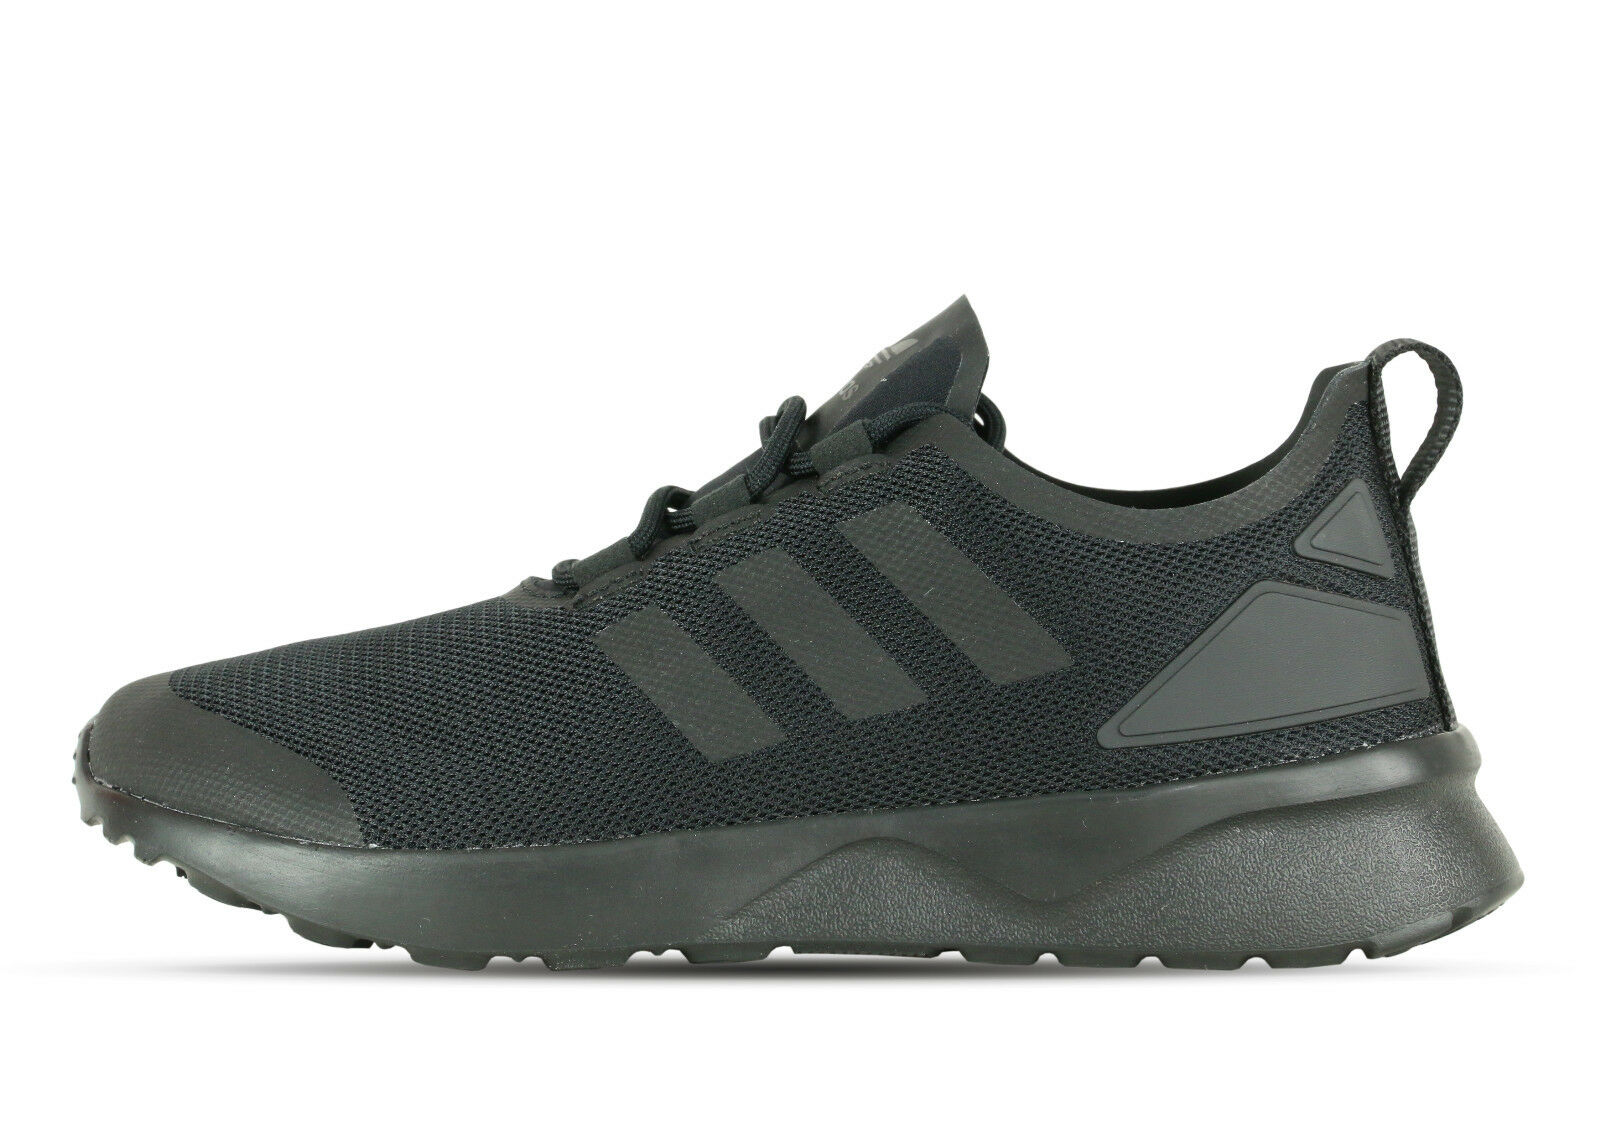 adidas EQT Support Rf W, UK Femme's Fitness chaussures 4 UK W, d4a5d0